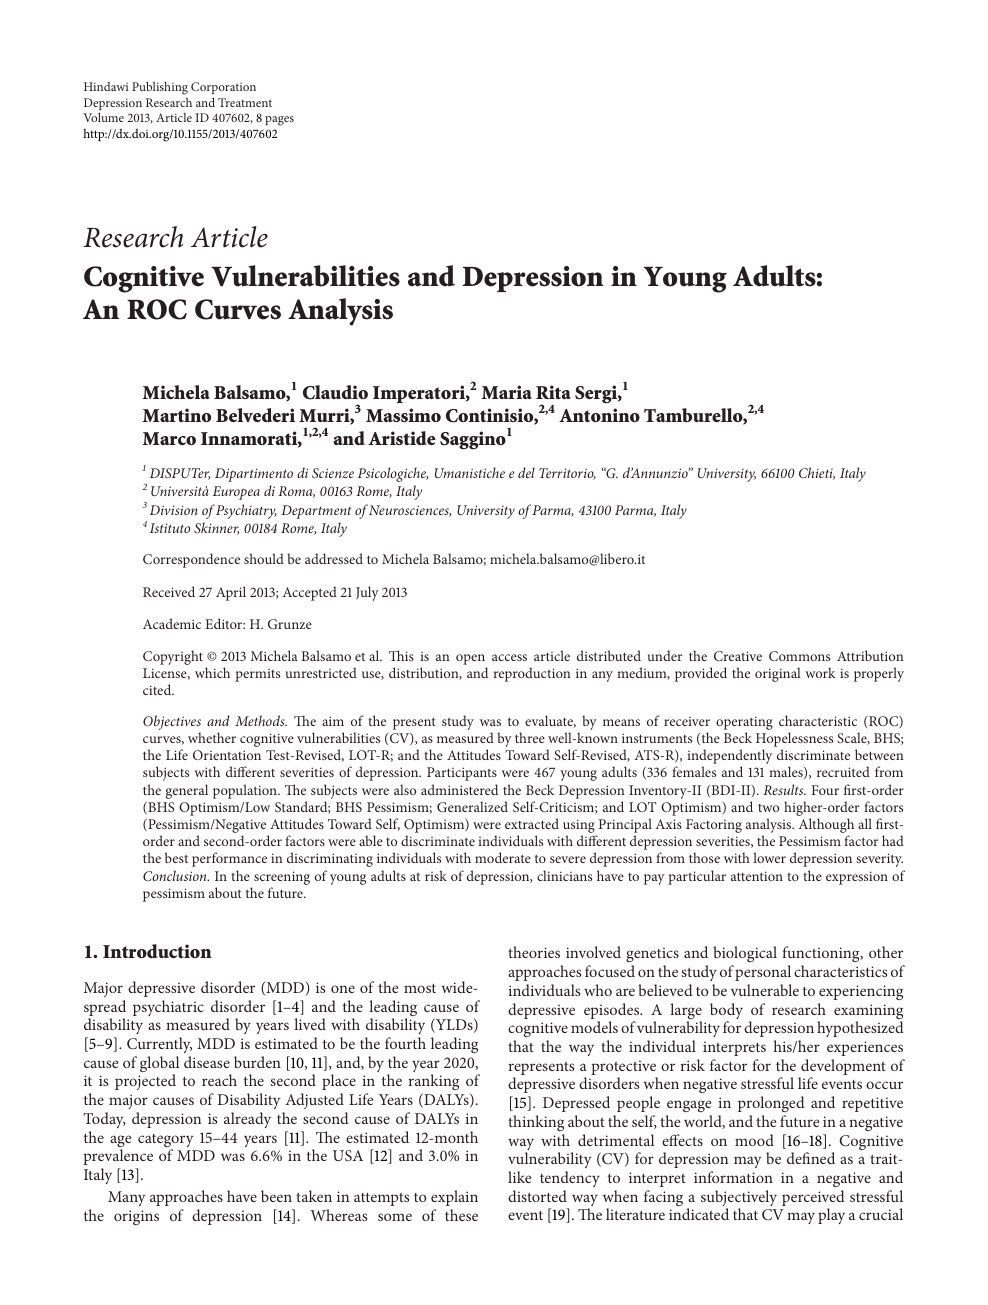 010 Research Paper Introduction To Stunning Depression Full